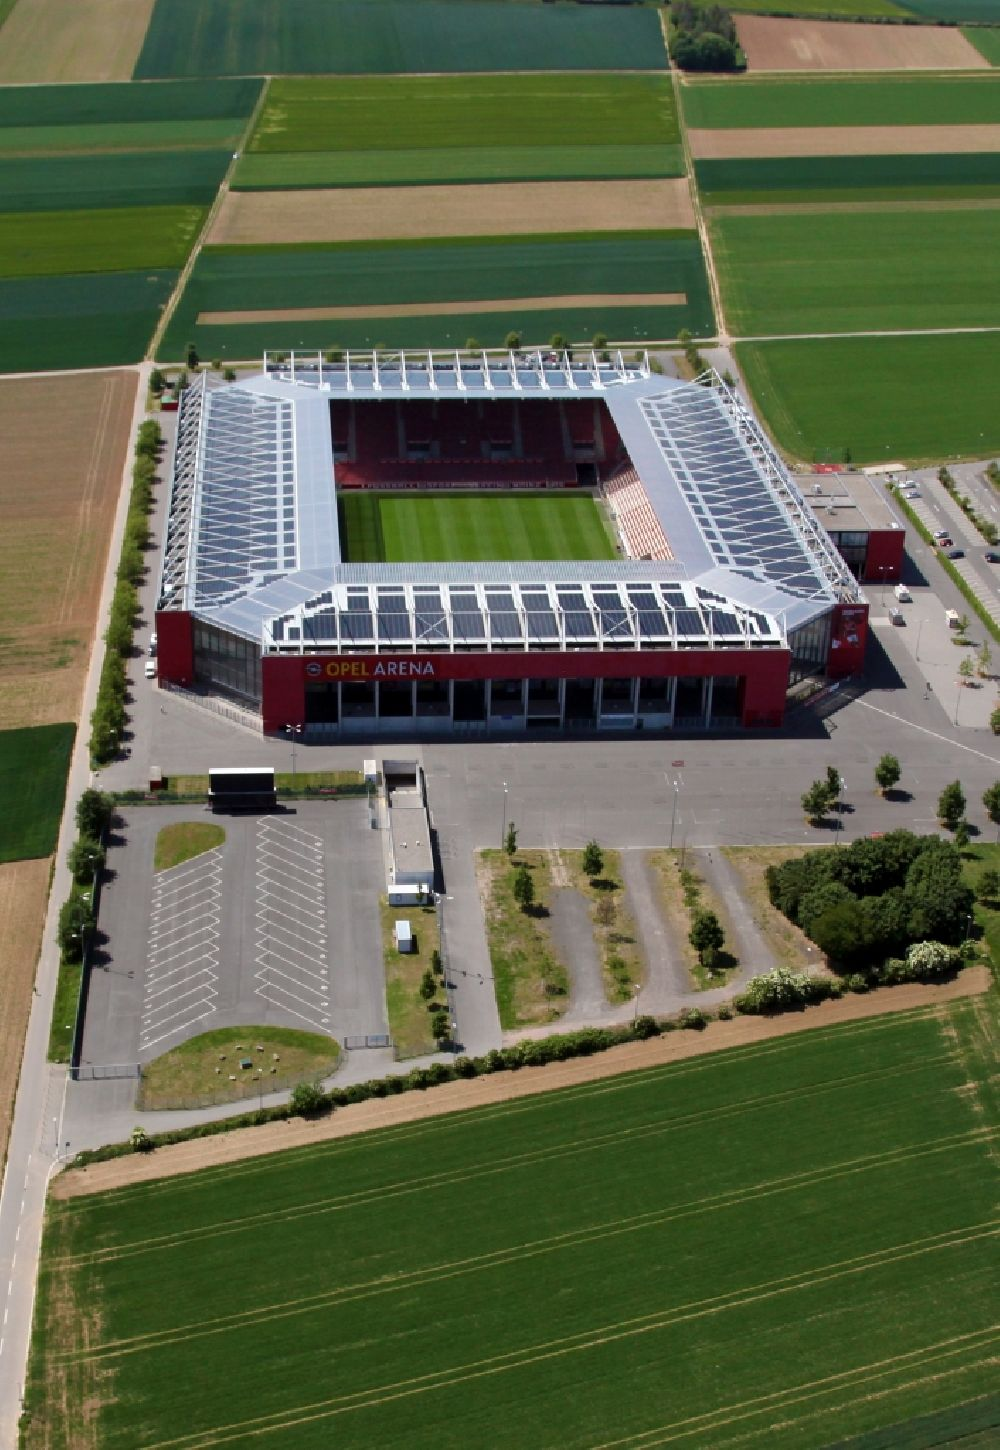 Aerial image Mainz - Sports facility grounds of the arena of the stadium OPEL ARENA (former name Coface Arena) on Eugen-Salomon-Strasse in Mainz in the state Rhineland-Palatinate, Germany